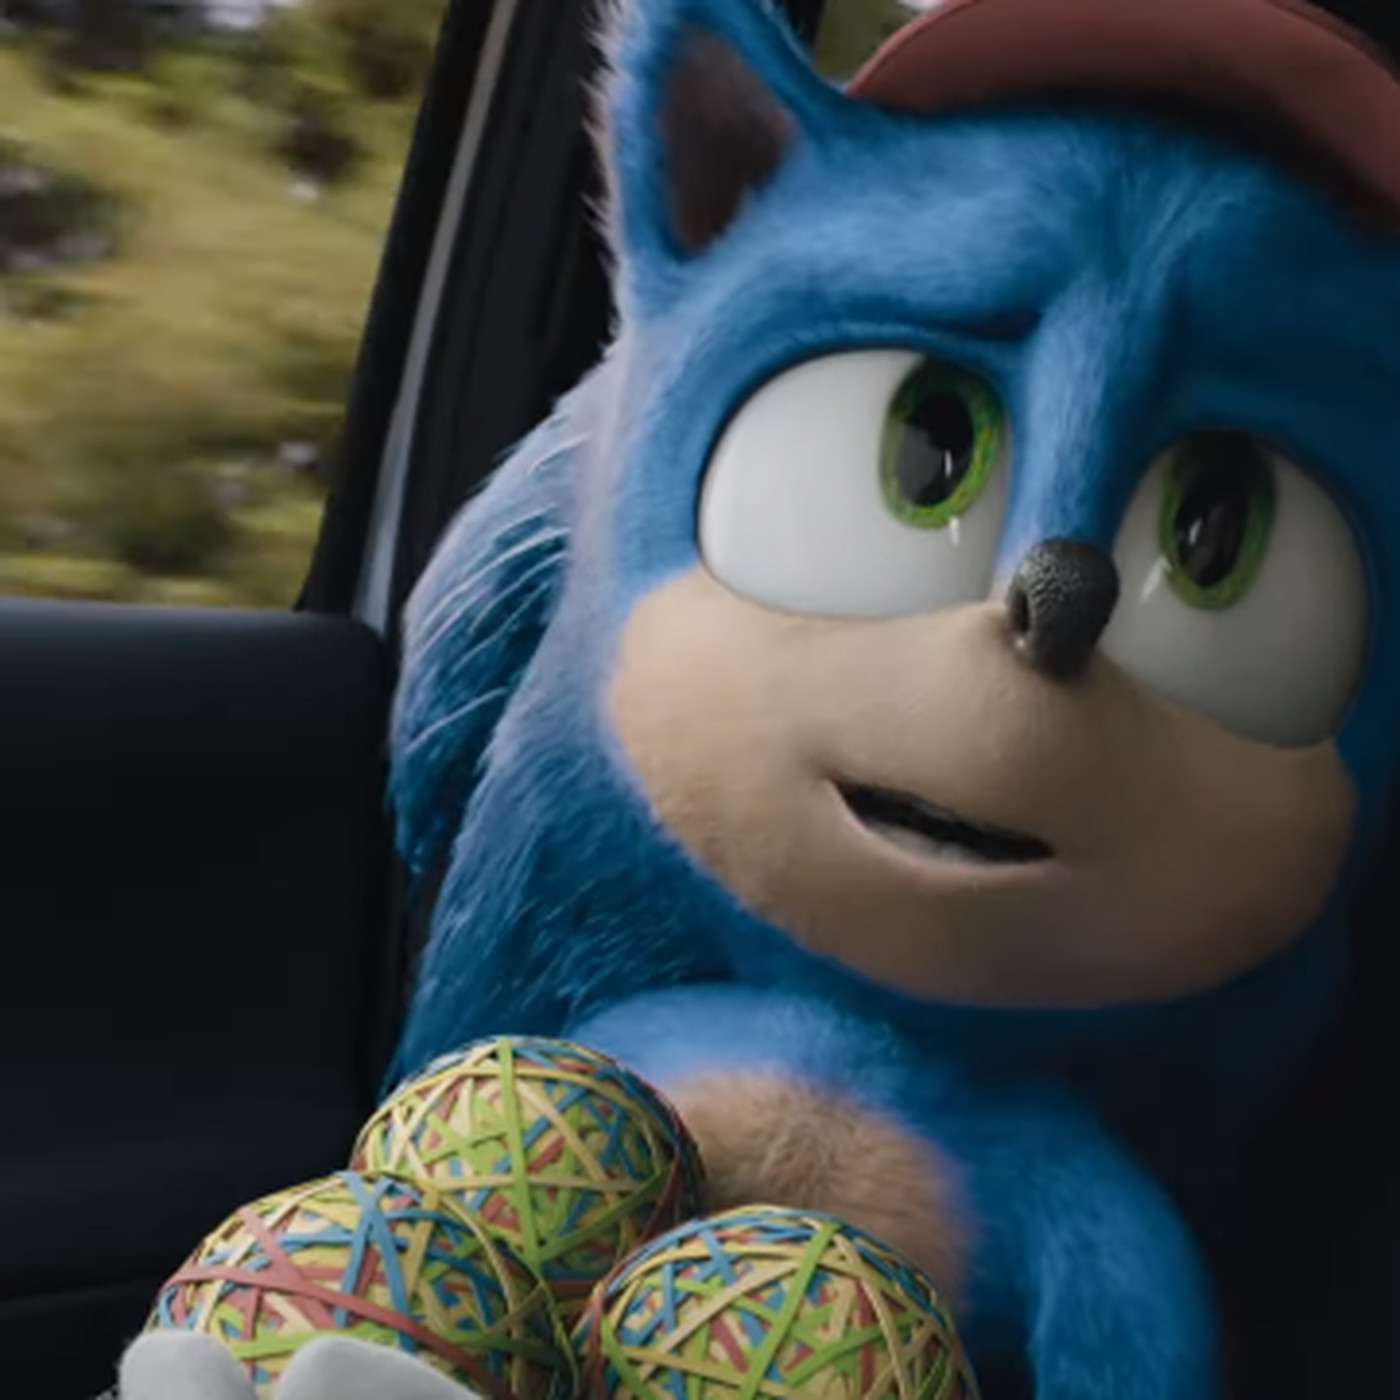 Sonic The Hedgehog Returns With Bigger Eyes And Fewer Teeth In New